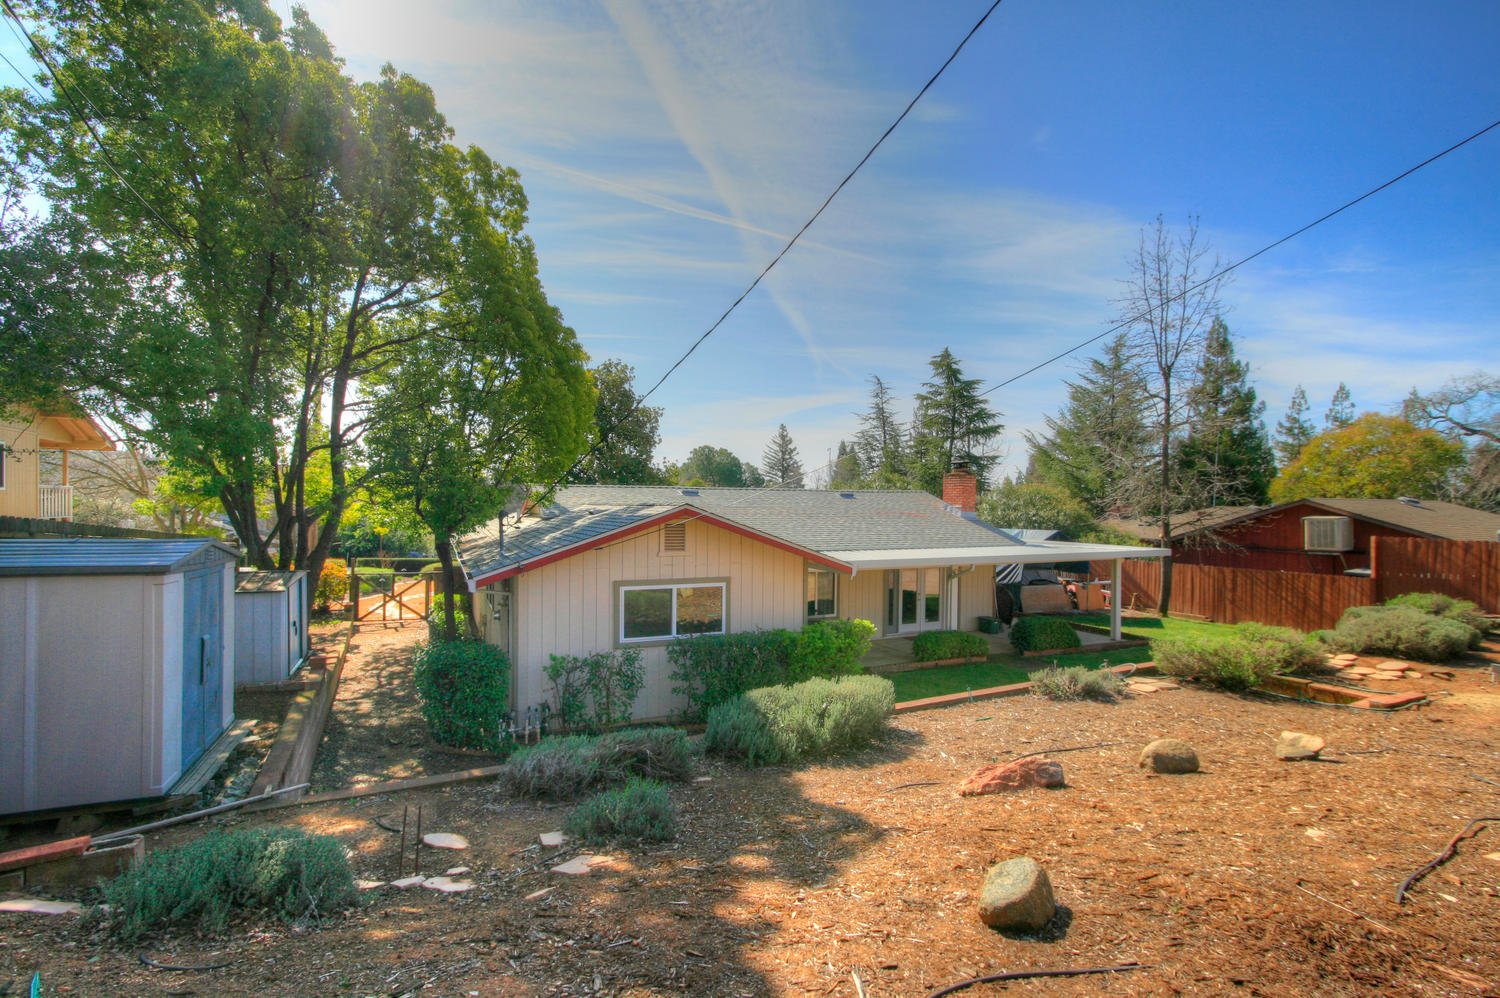 3752 Cambridge Rd, Cameron Park, CA 95682